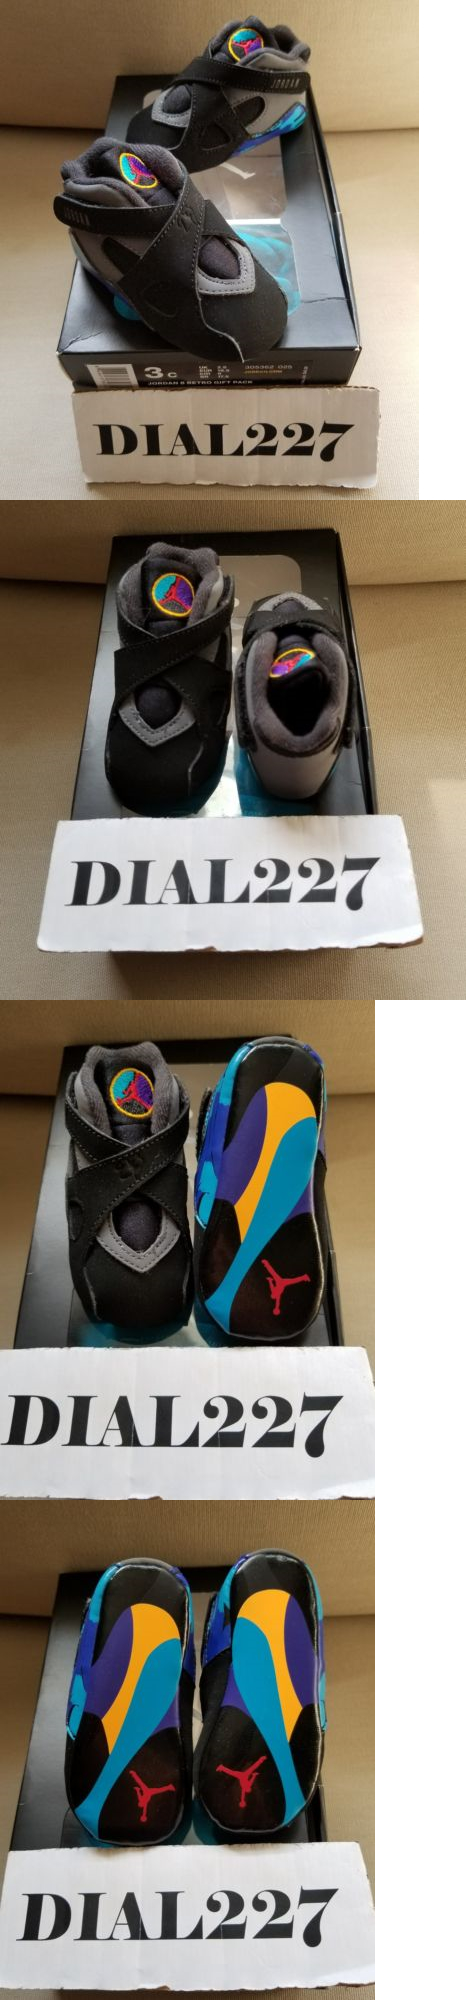 854099f4421a7a Baby Shoes 147285  Nike Air Jordan 8 Viii Aqua Set Size 3C Soft Bottom With  Newborn Hat -  BUY IT NOW ONLY   39.99 on eBay!